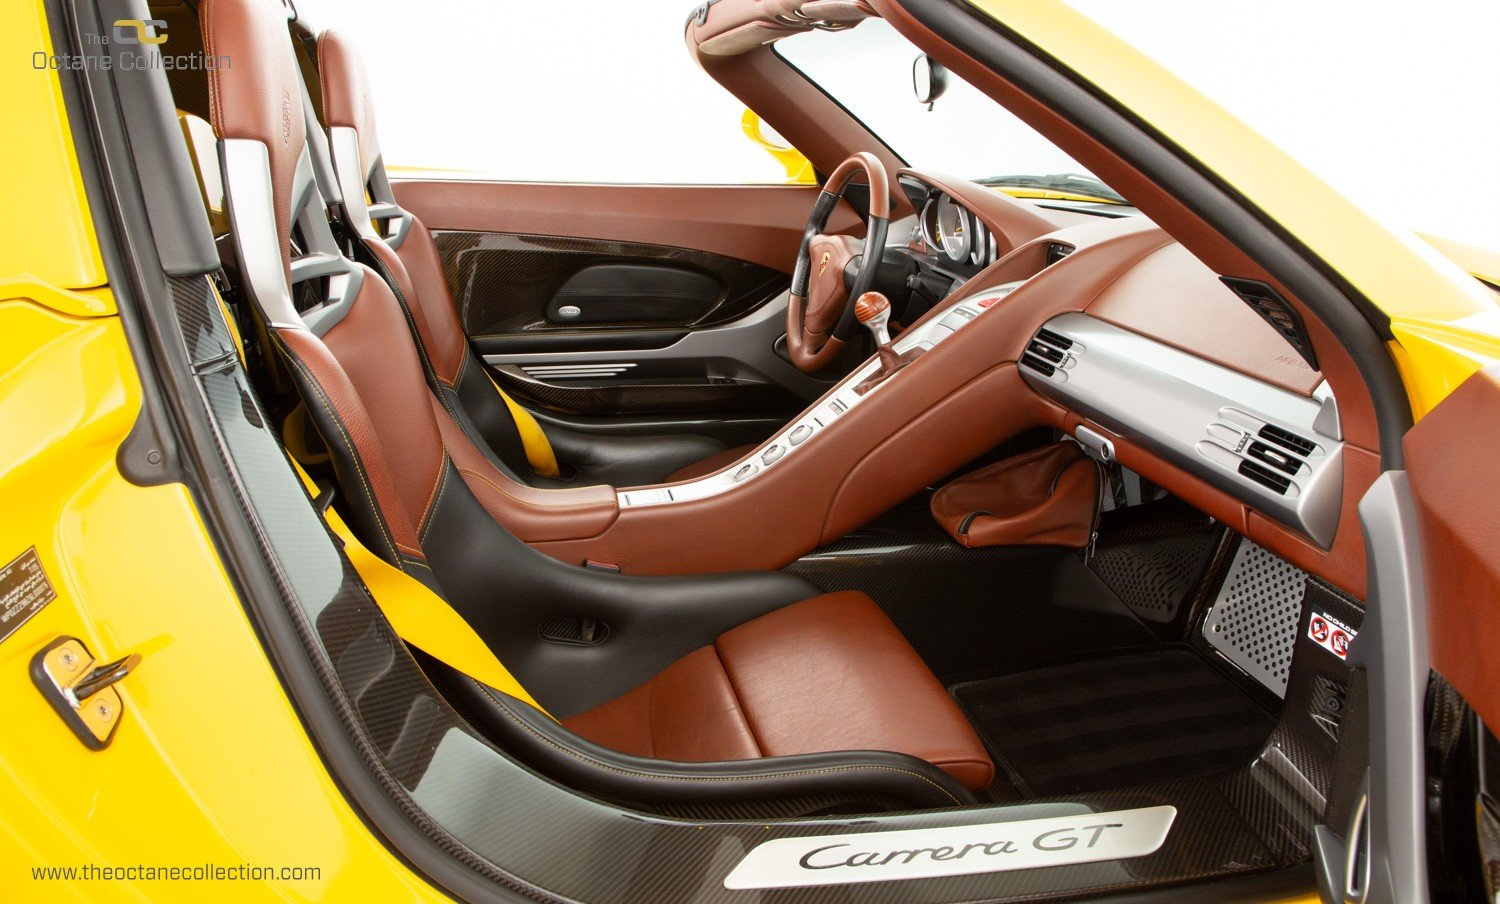 2006  PORSCHE CARRERA GT // SPEED YELLOW // ENGINE OUT SERVICE For Sale (picture 12 of 23)